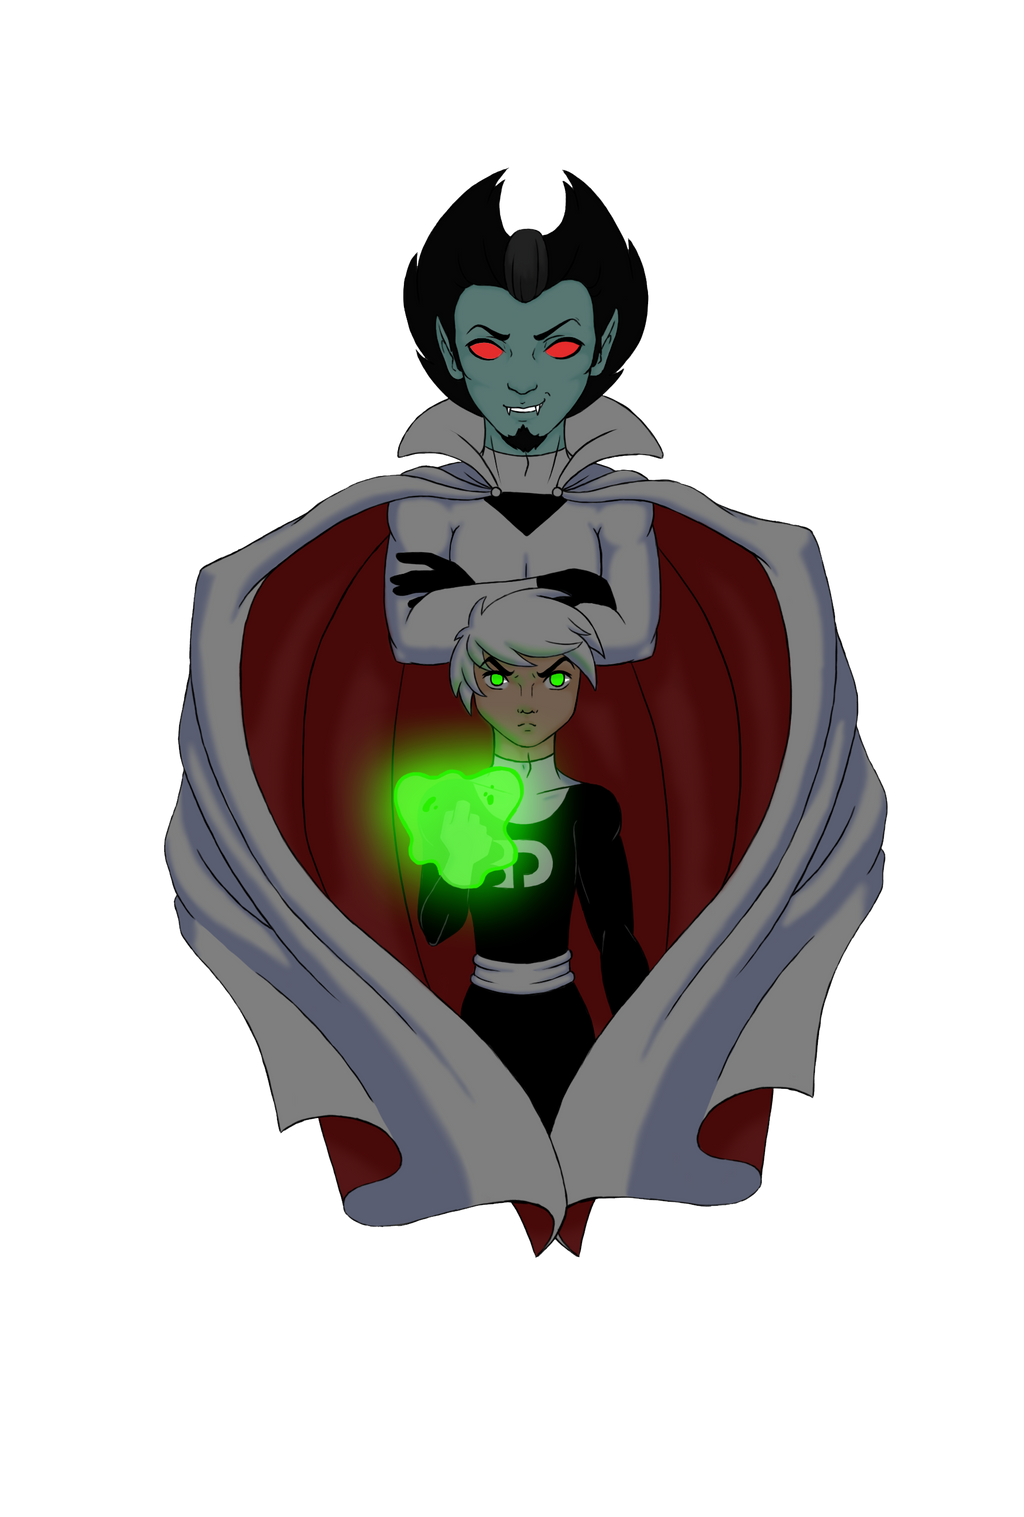 Vlad Plasmius x Danny Phantom by RainbowMassacre90